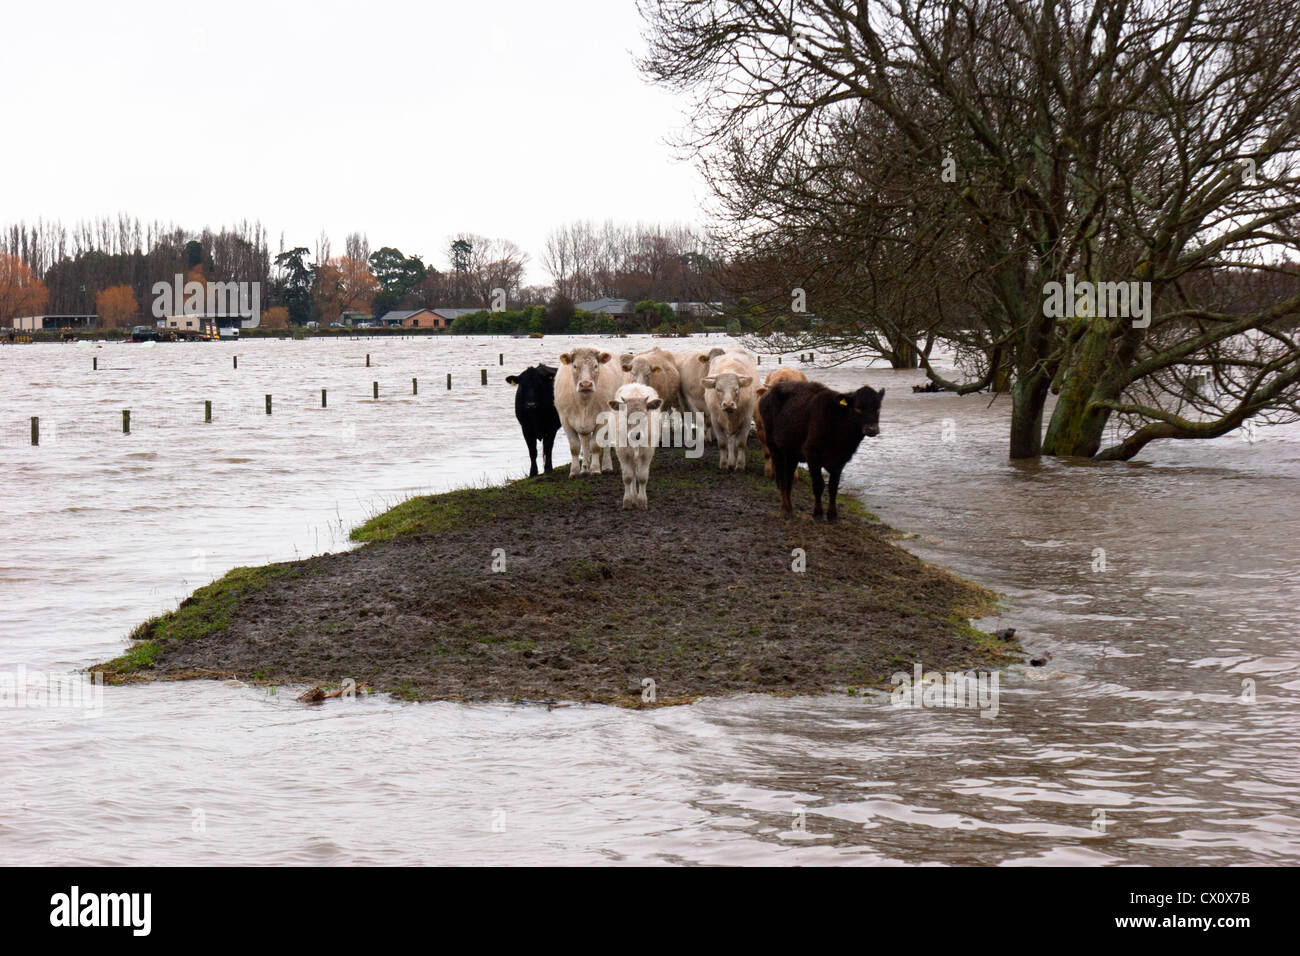 Stranded: a group of cattle stranded by a flood: they all survived. - Stock Image